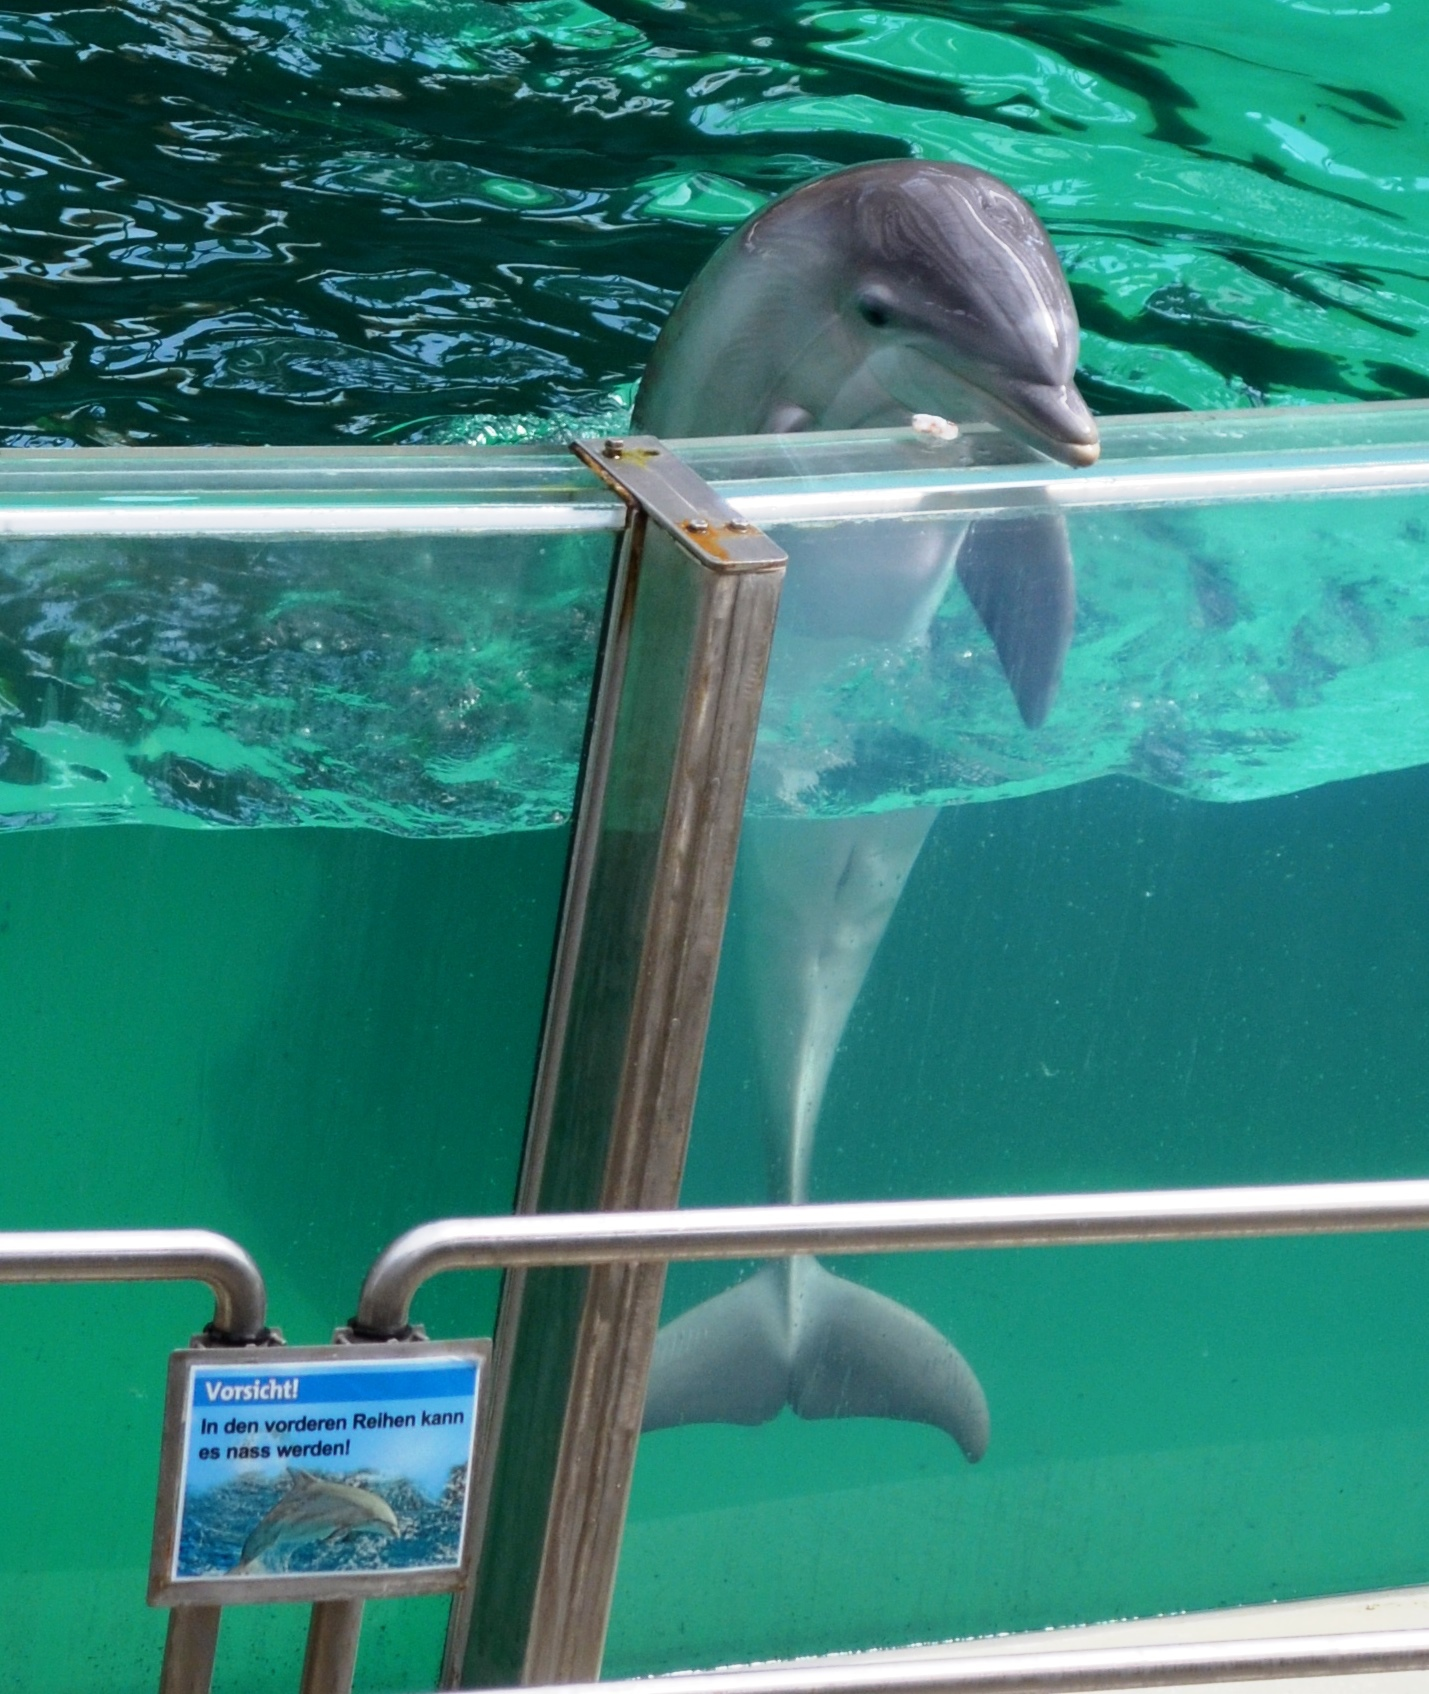 Captive bottlenose dolphin at Duisburg Zoo